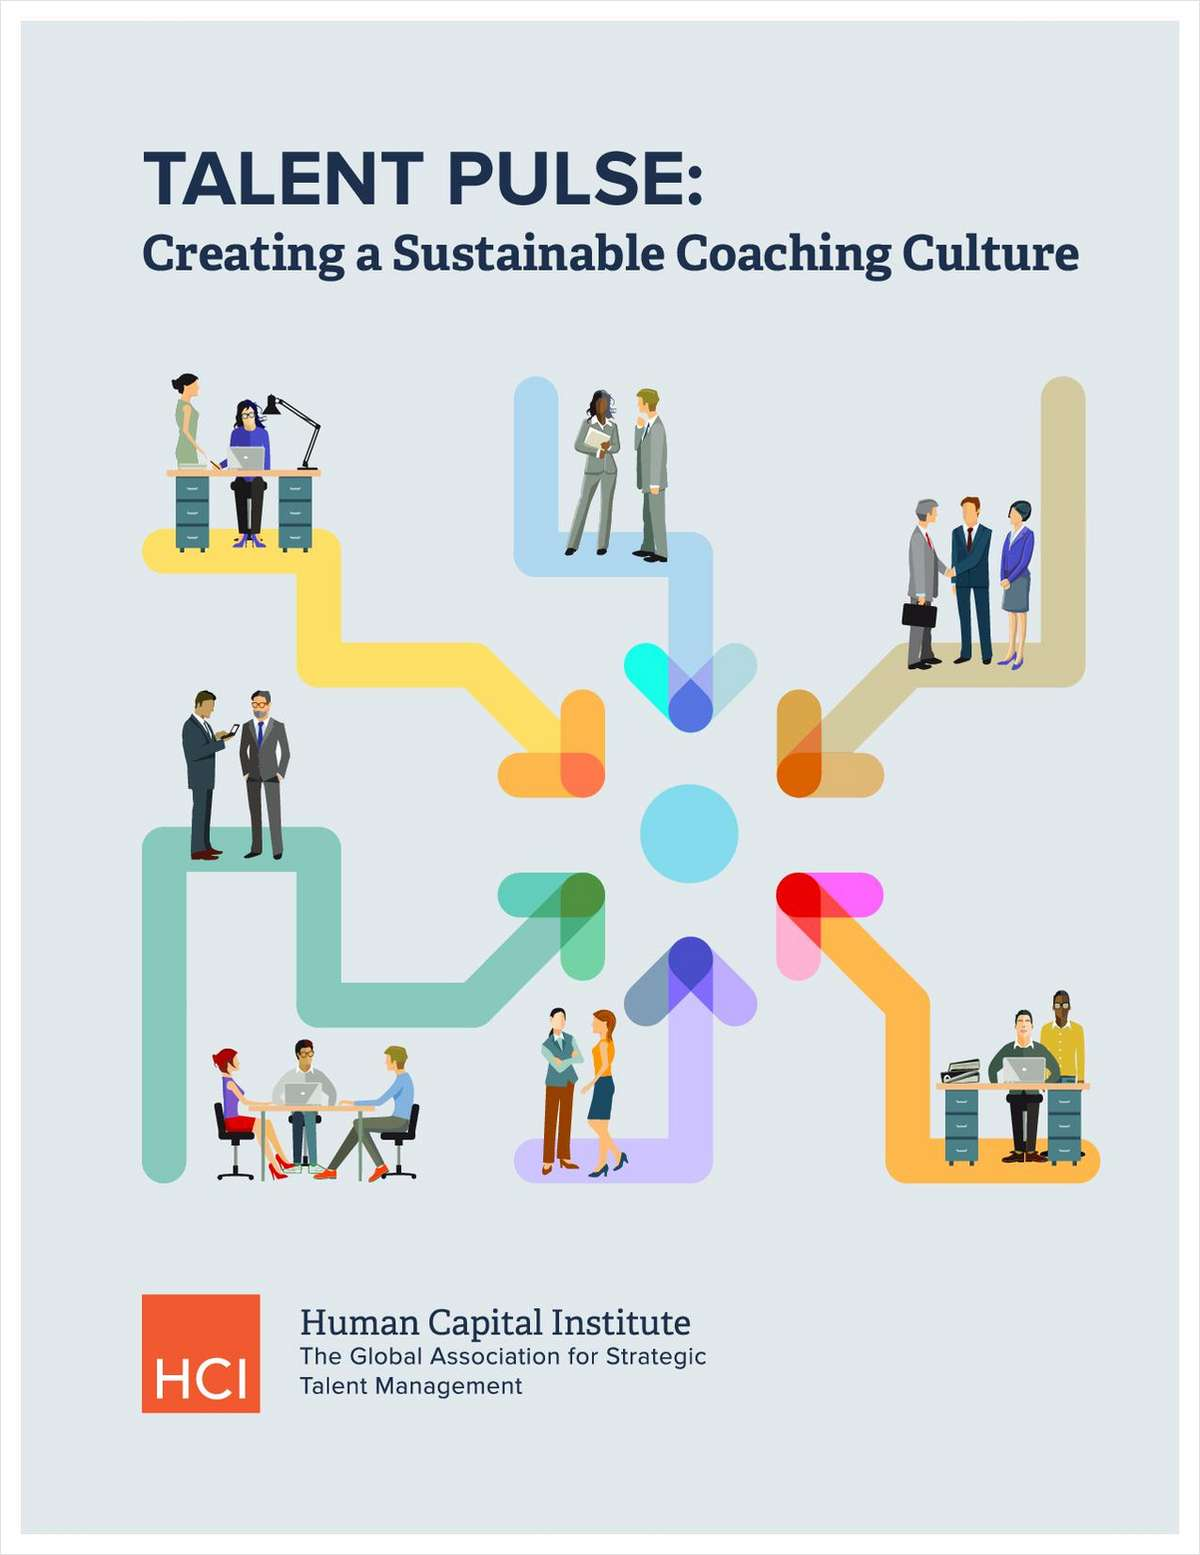 Talent Pulse: Creating a Sustainable Coaching Culture